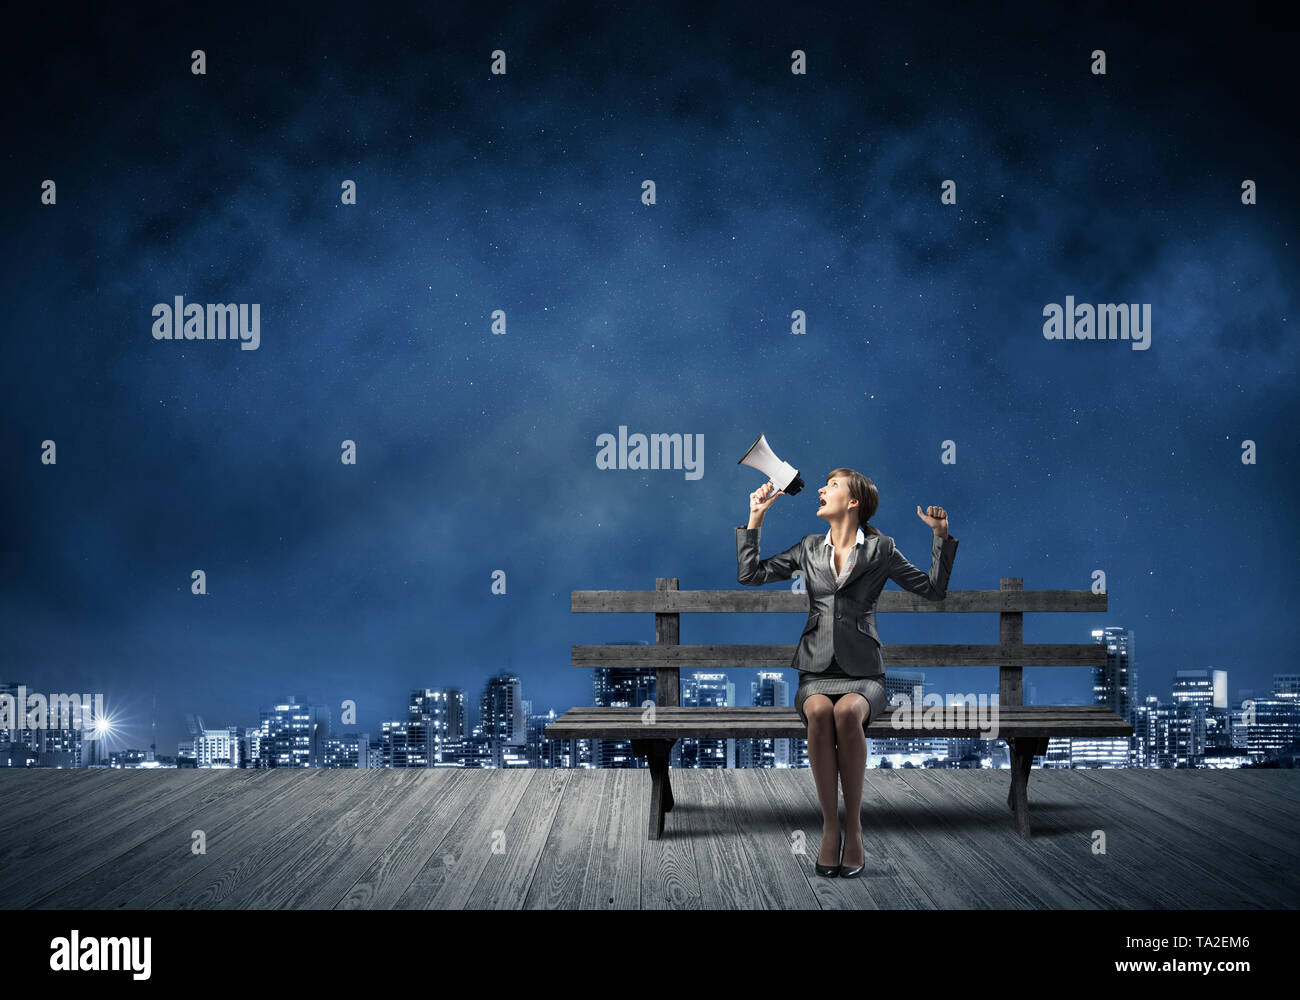 Business woman with megaphone on wooden bench - Stock Image